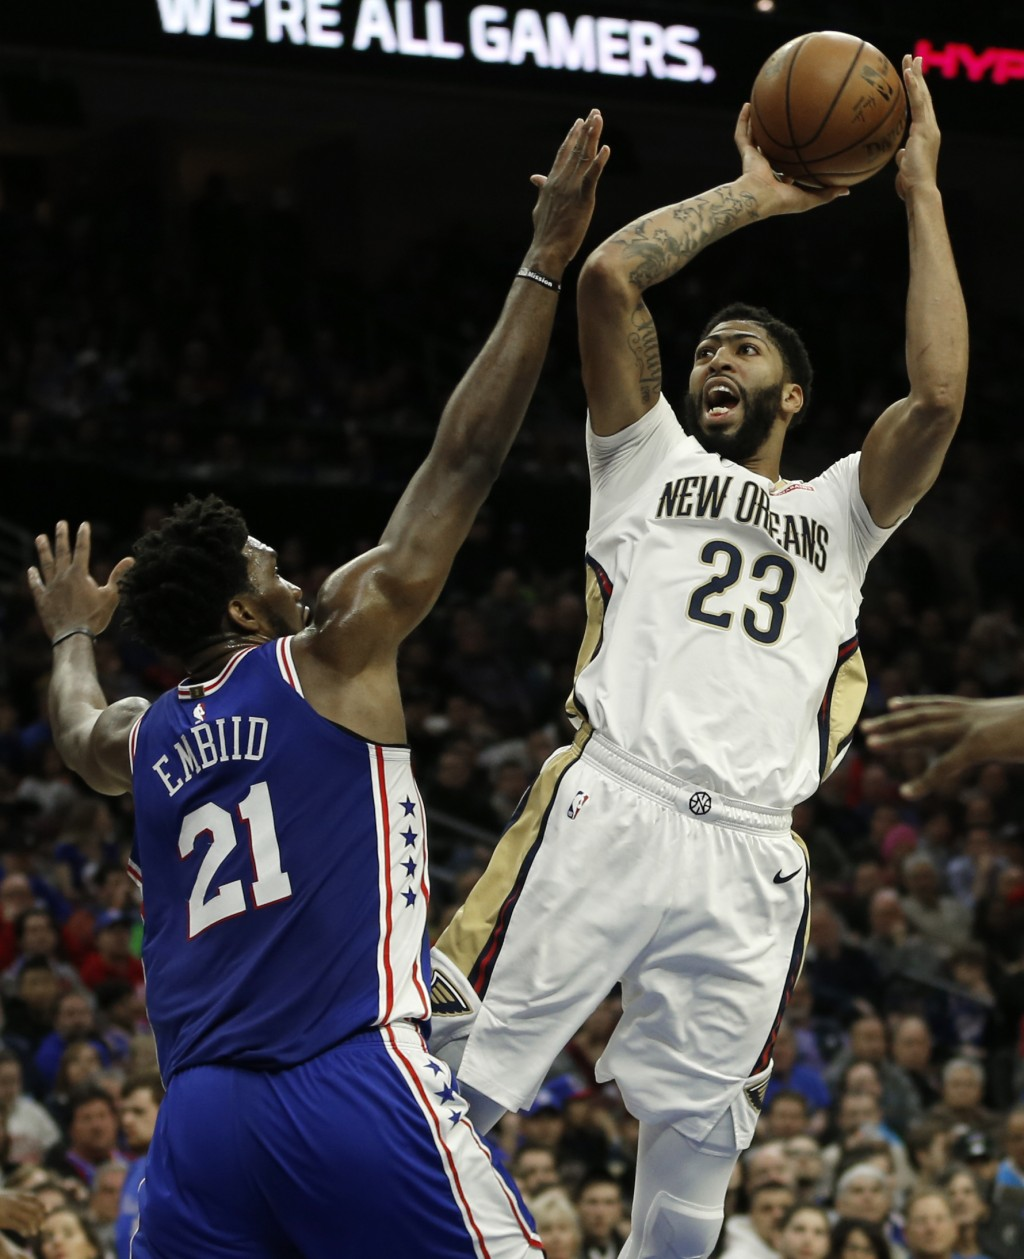 New Orleans Pelicans forward Anthony Davis (23) takes a shot over Philadelphia 76ers center Joel Embiid (21) in the first half on an NBA basketball ga...